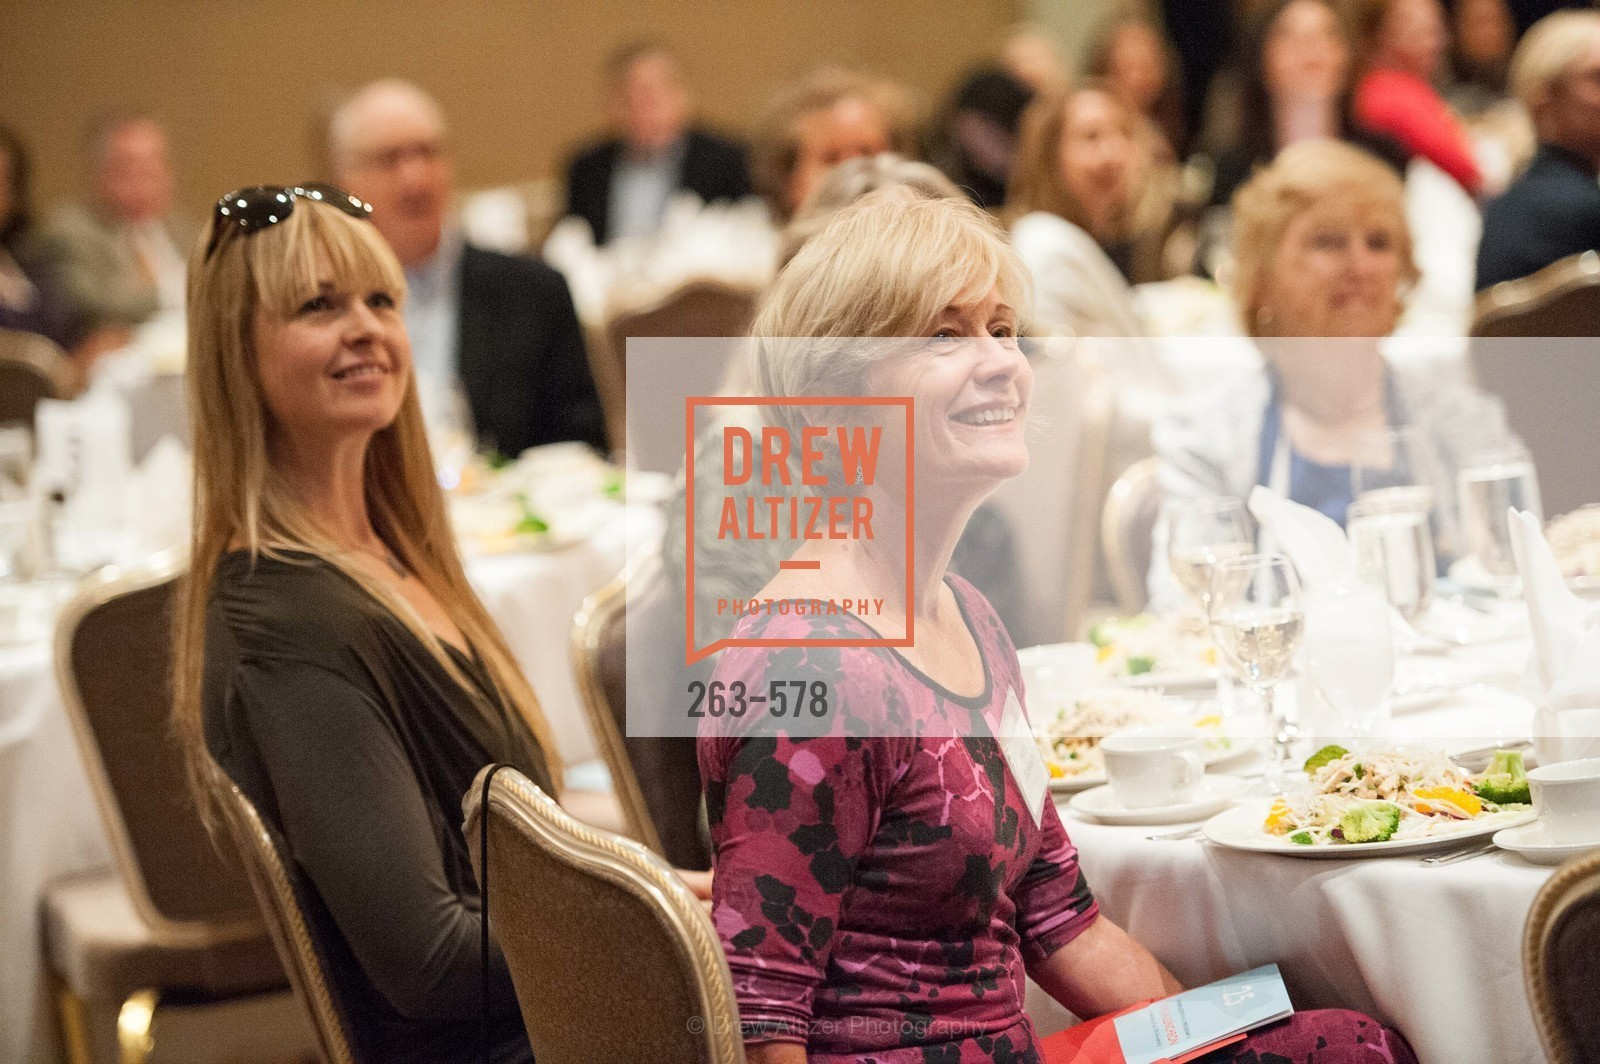 Erin O'Brien, Paula Delahanty, HOMELESS PRENATAL Annual Luncheon 2014, US, September 30th, 2014,Drew Altizer, Drew Altizer Photography, full-service agency, private events, San Francisco photographer, photographer california